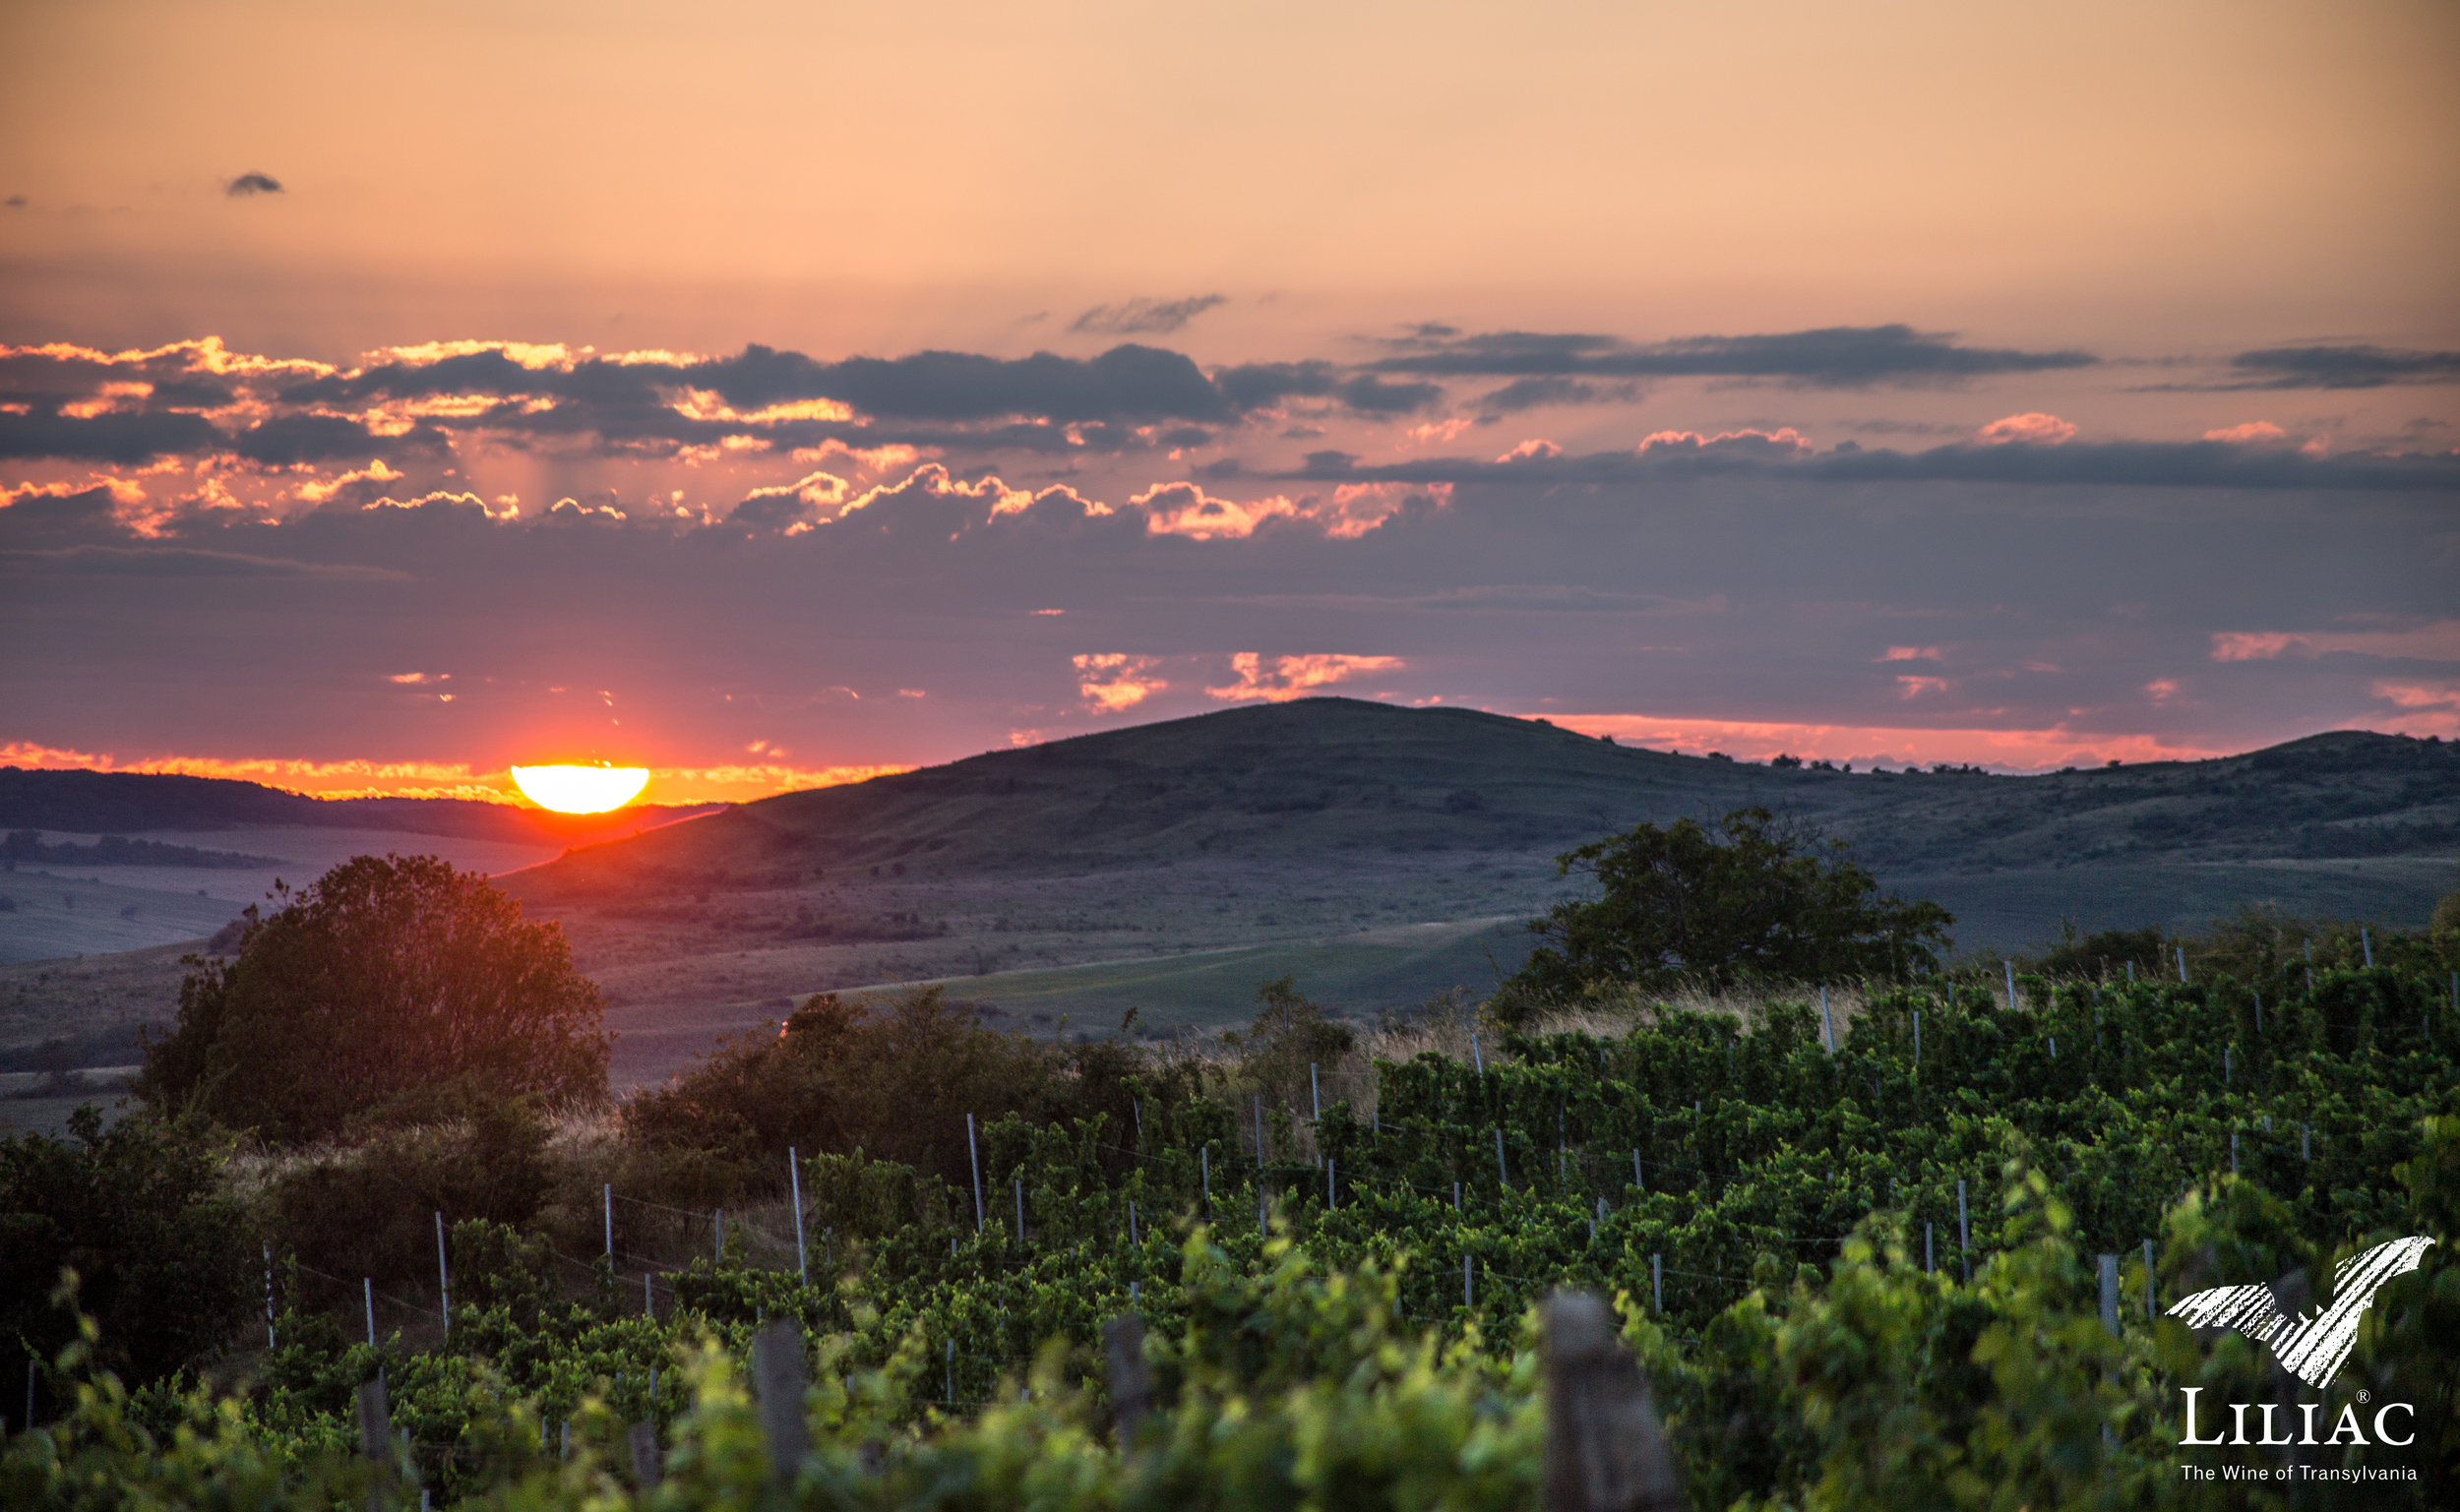 Sunset above the vines | Photo Credit: Liliac